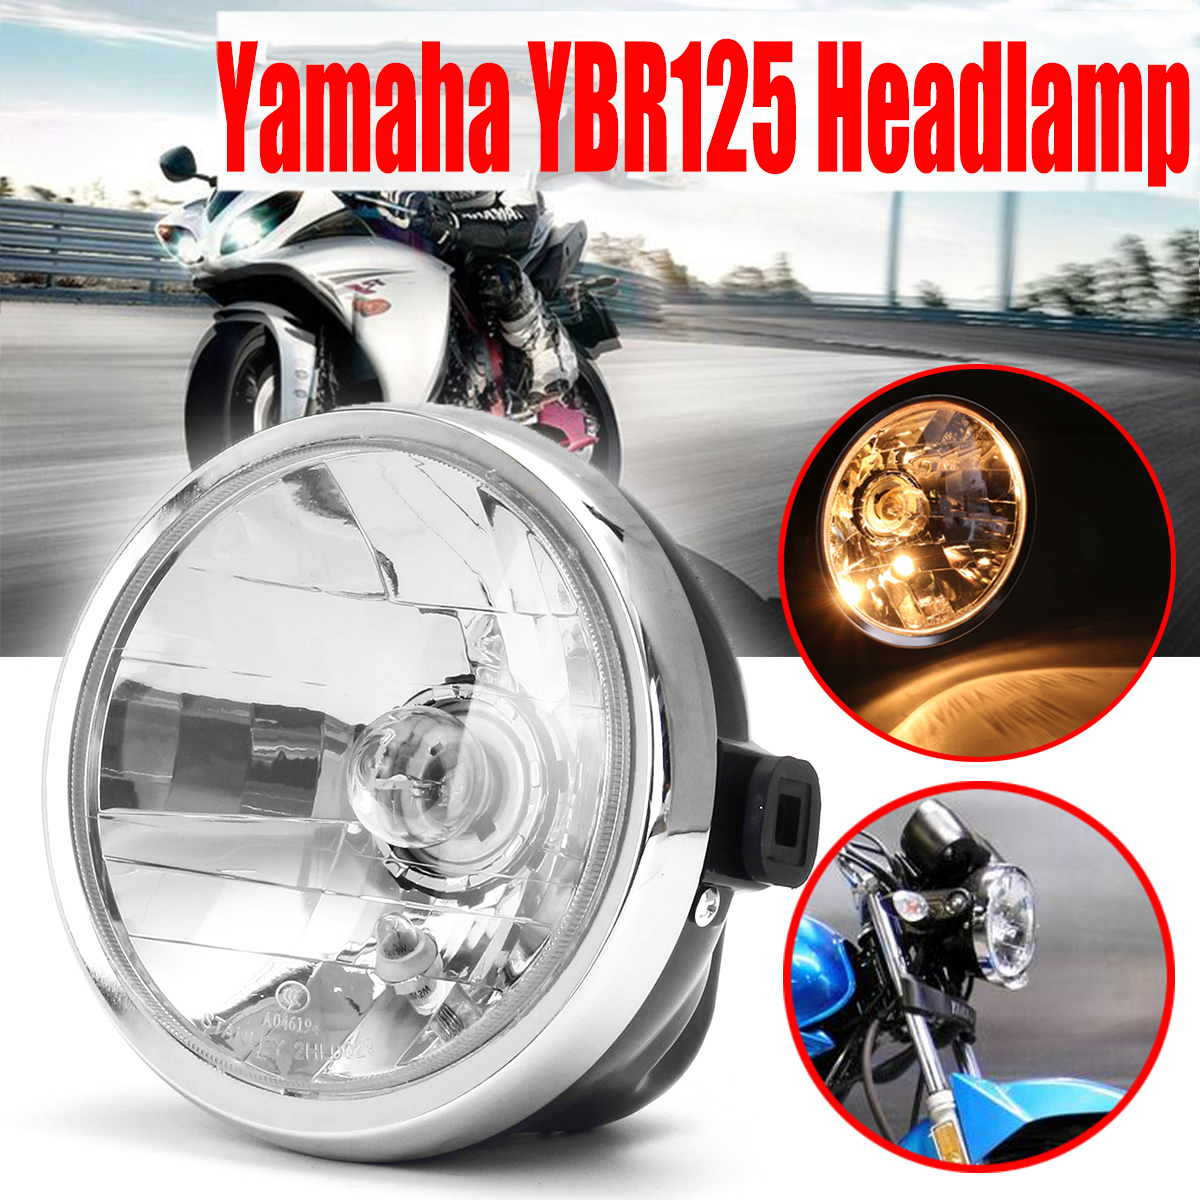 TAIL LIGHT ASSEMBLY For Yamaha YBR125 YBR 125 2002-2013 03 04 05 06 07 08 09 10